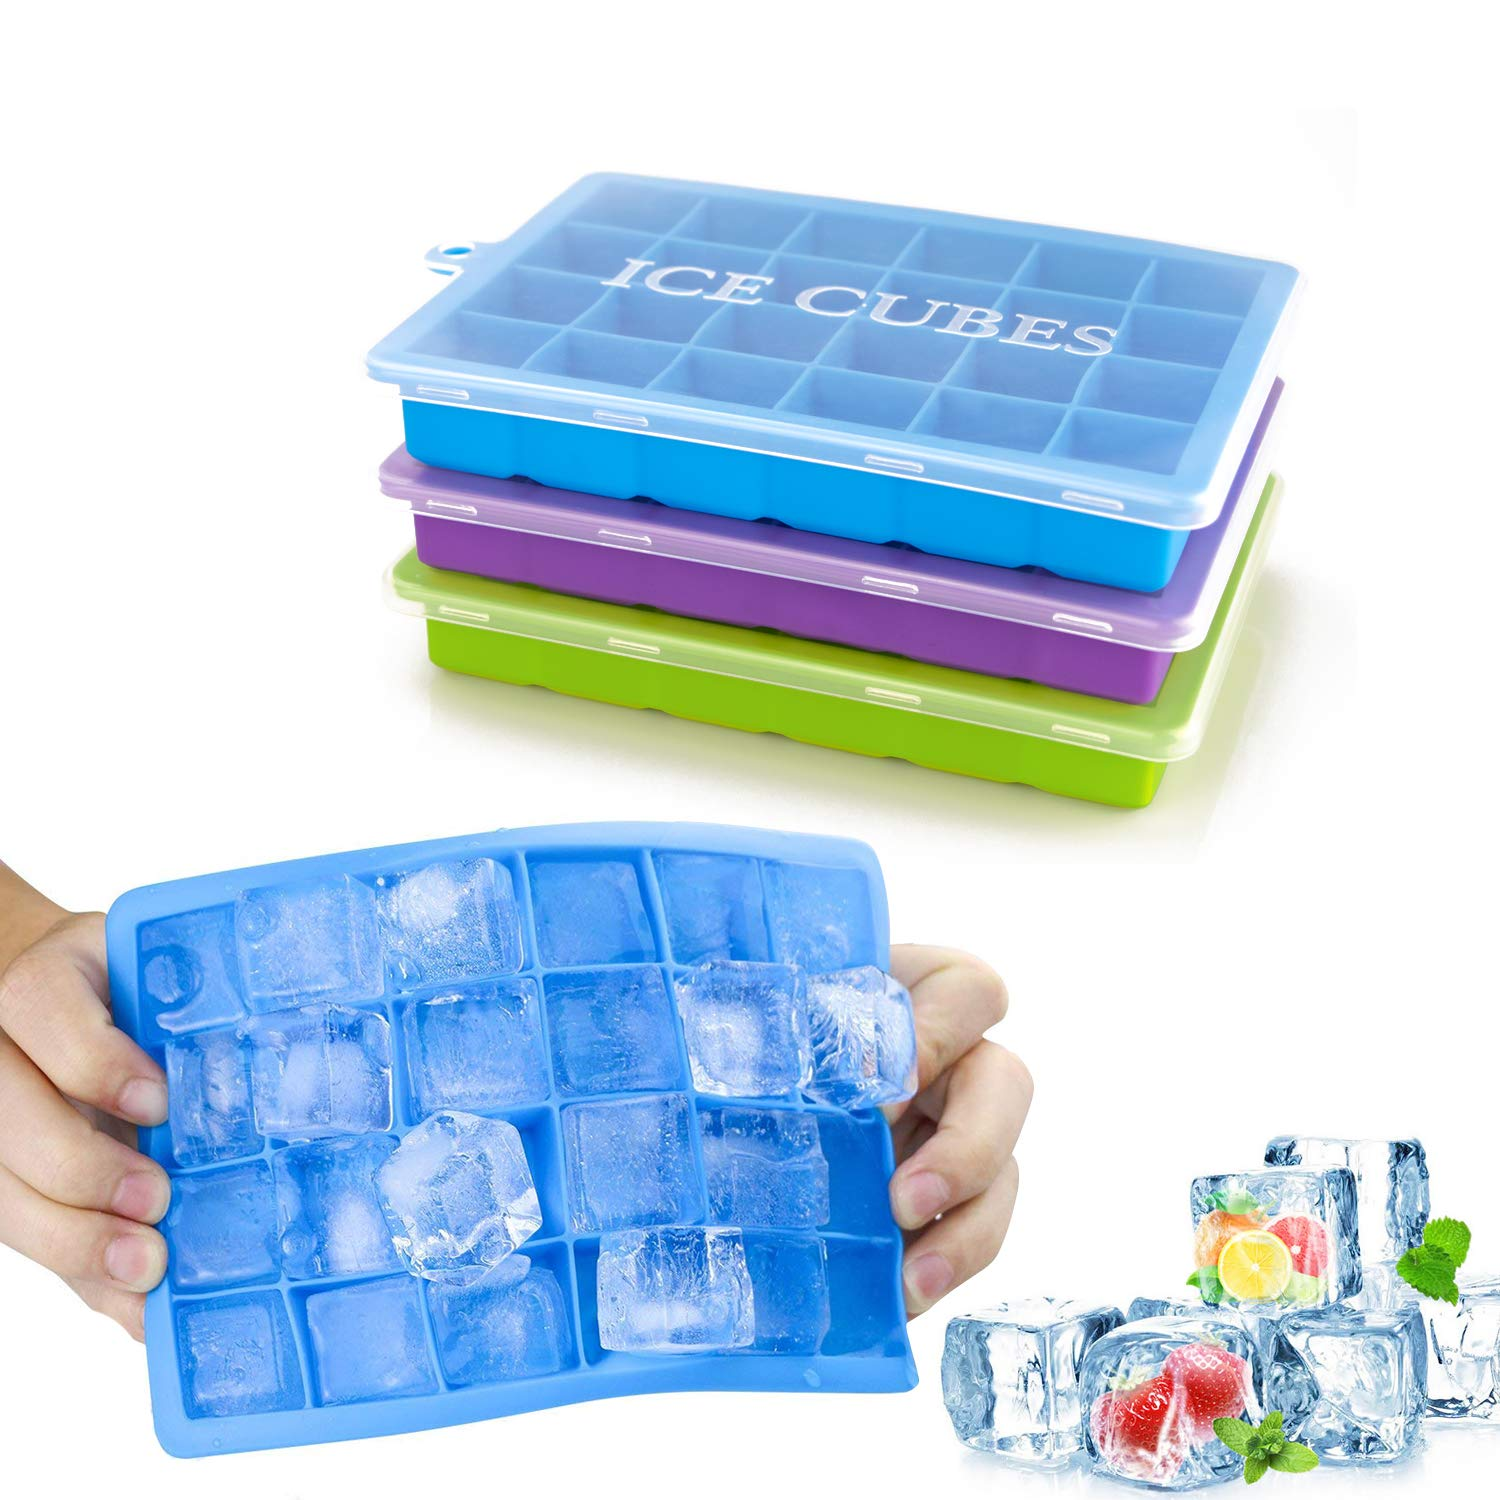 Ice Cube Trays 3 Pack, Morfone Silicone Ice Tray with Removable Lid Easy-Release Flexible Ice Cube Molds 24 Cubes per Tray for Cocktail, Whiskey, Baby Food, Chocolate, BPA Free by Morfone